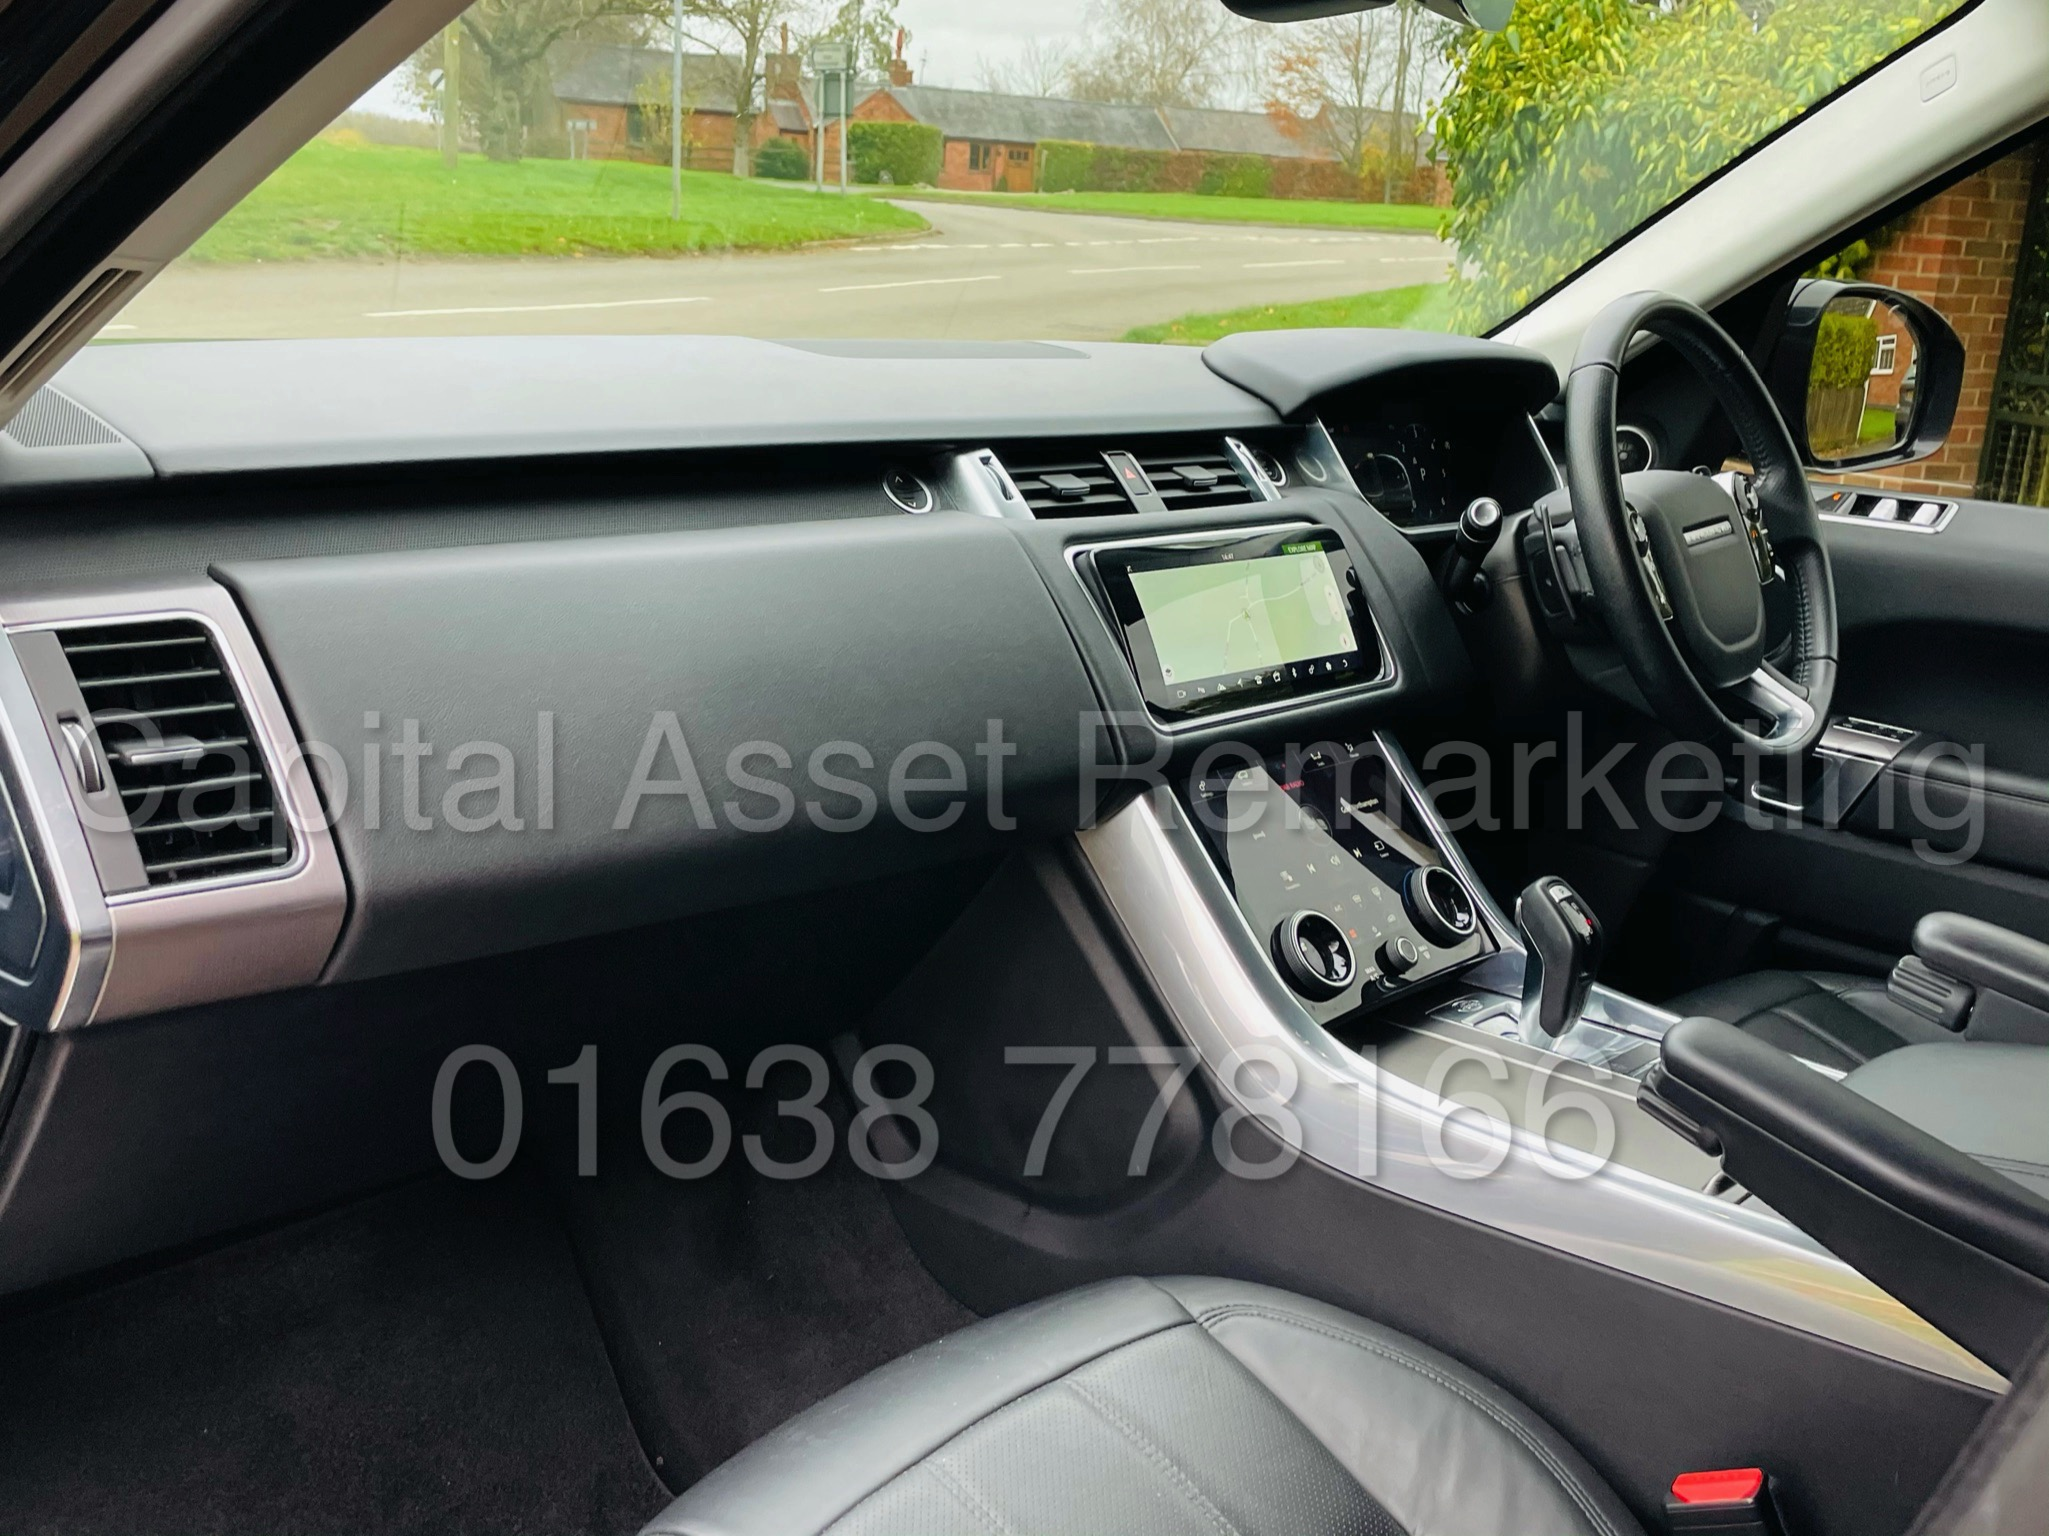 RANGE ROVER SPORT *HSE EDITION* SUV (2019 MODEL) '3.0 SDV6 - 306 BHP - 8 SPEED AUTO' *FULLY LOADED* - Image 21 of 56